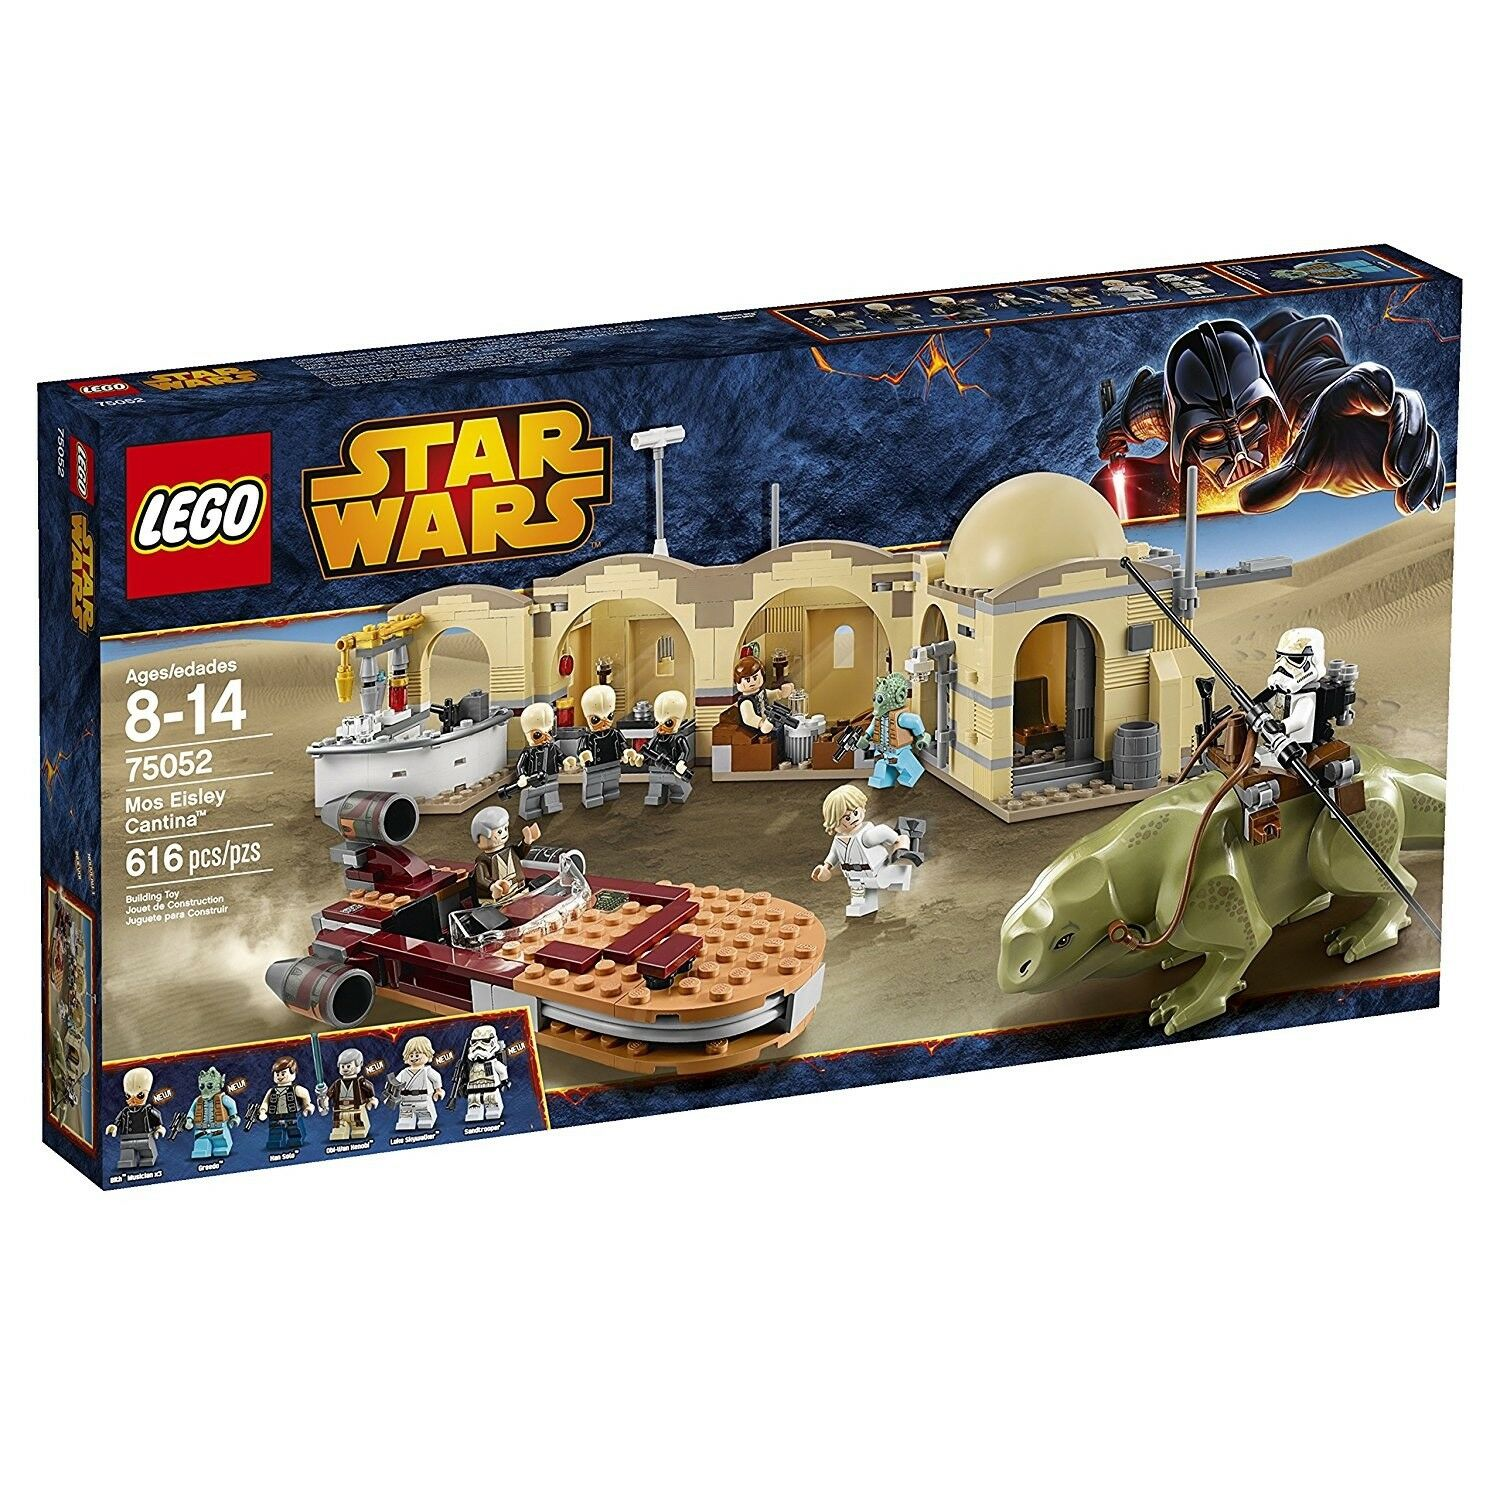 Lego 75052 Mos Eisley Cantina (MINT) Brand new and Factory sealed